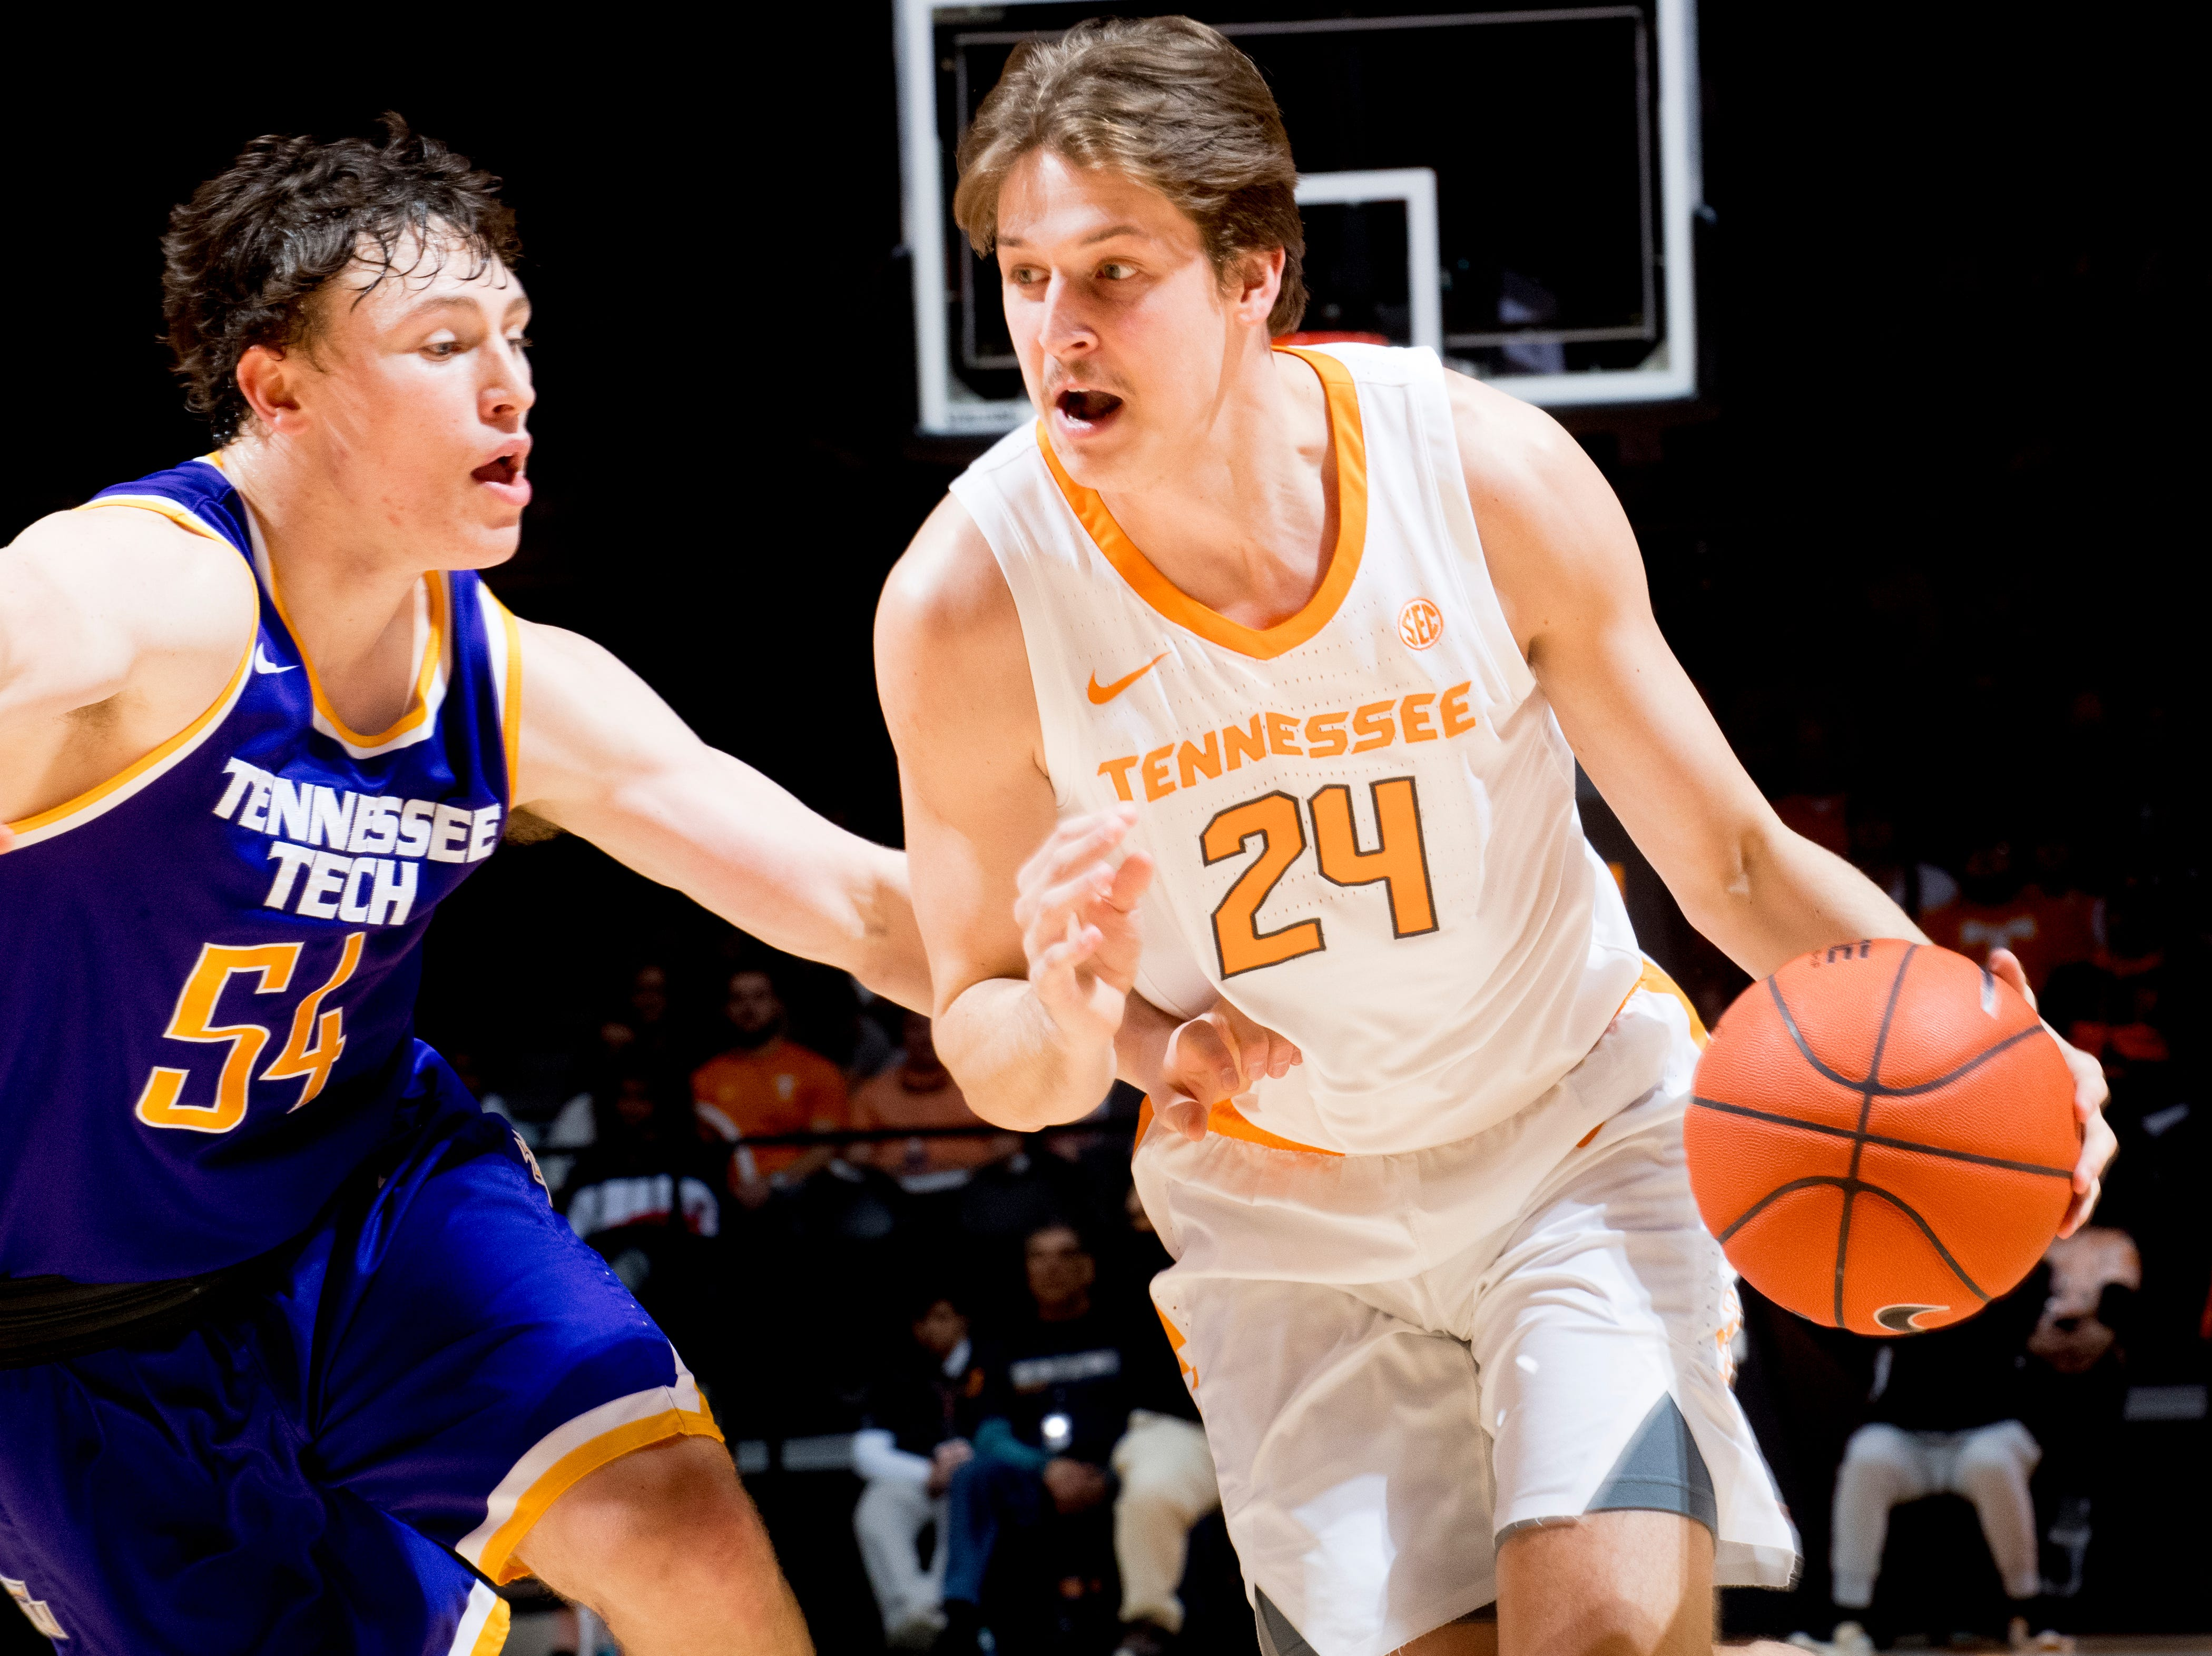 Tennessee guard Lucas Campbell (24) dribbles the ball around Tennessee Tech guard Cade Crosland (54) during a game between Tennessee and Tennessee Tech at Thompson-Boling Arena in Knoxville, Tennessee on Saturday, December 29, 2018.